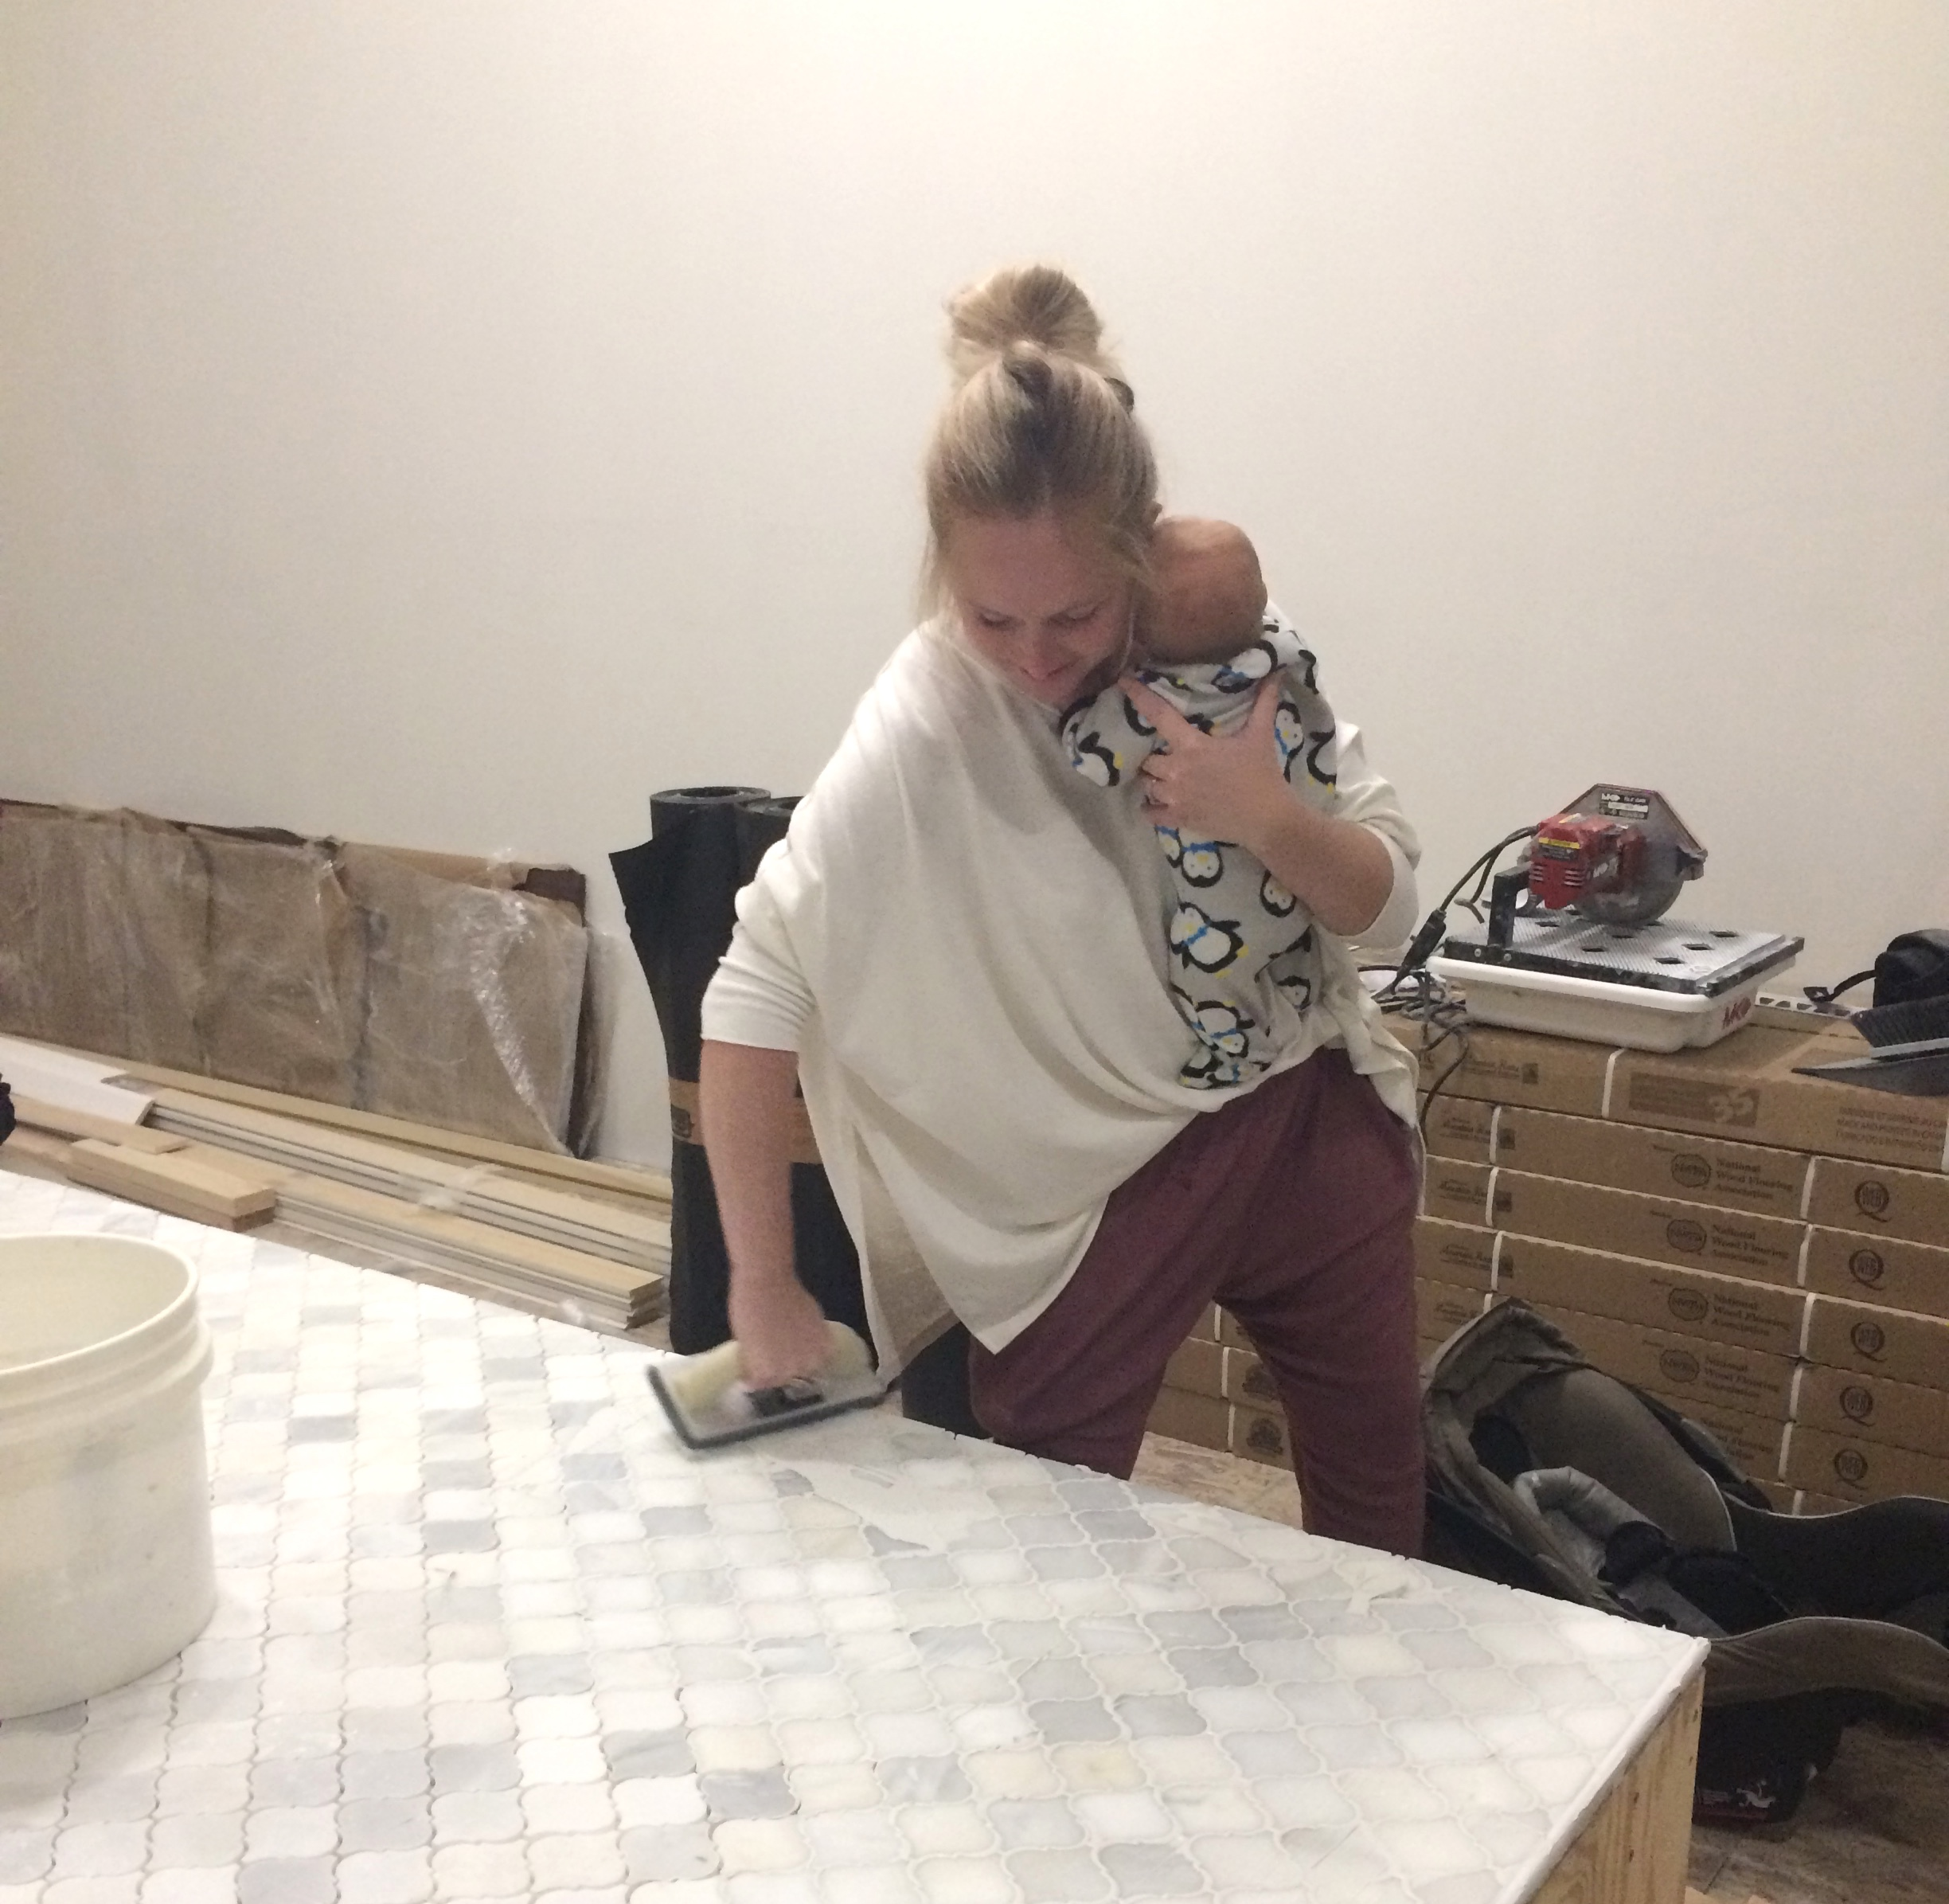 Samantha with her 3rd baby, Dax. He spent a lot of time helping us build the store. #ShopBaby